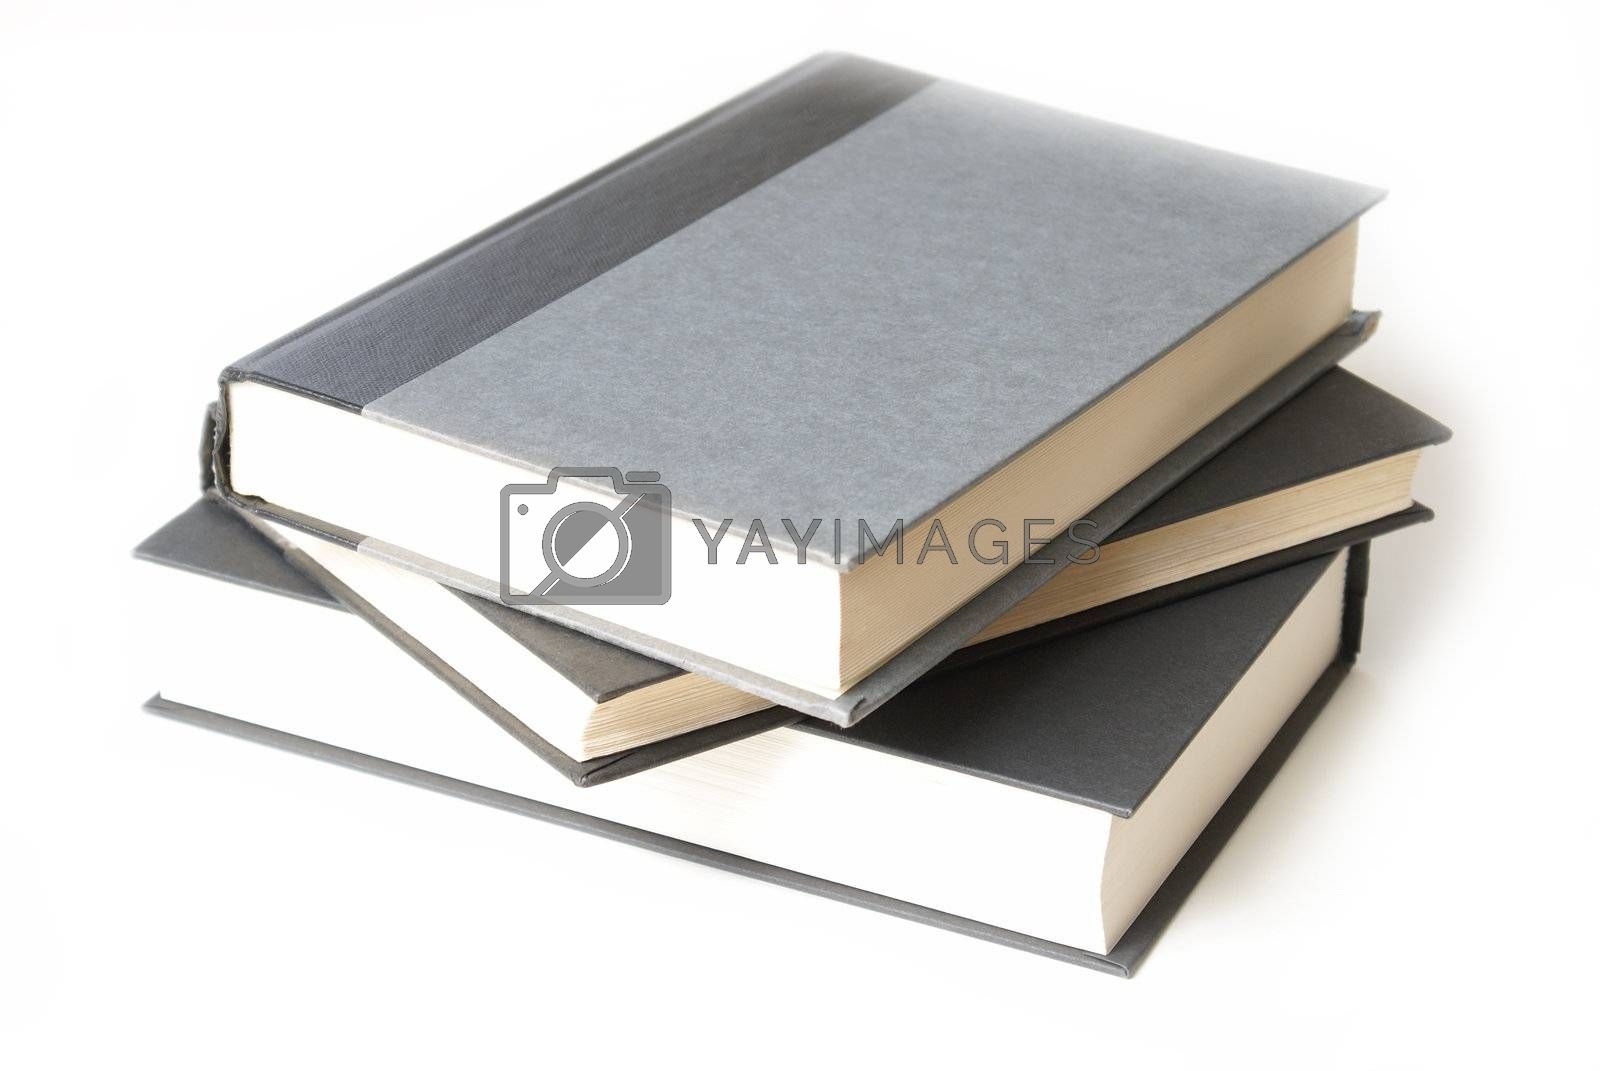 Royalty free image of Stack of Hardcover Books by AlphaBaby